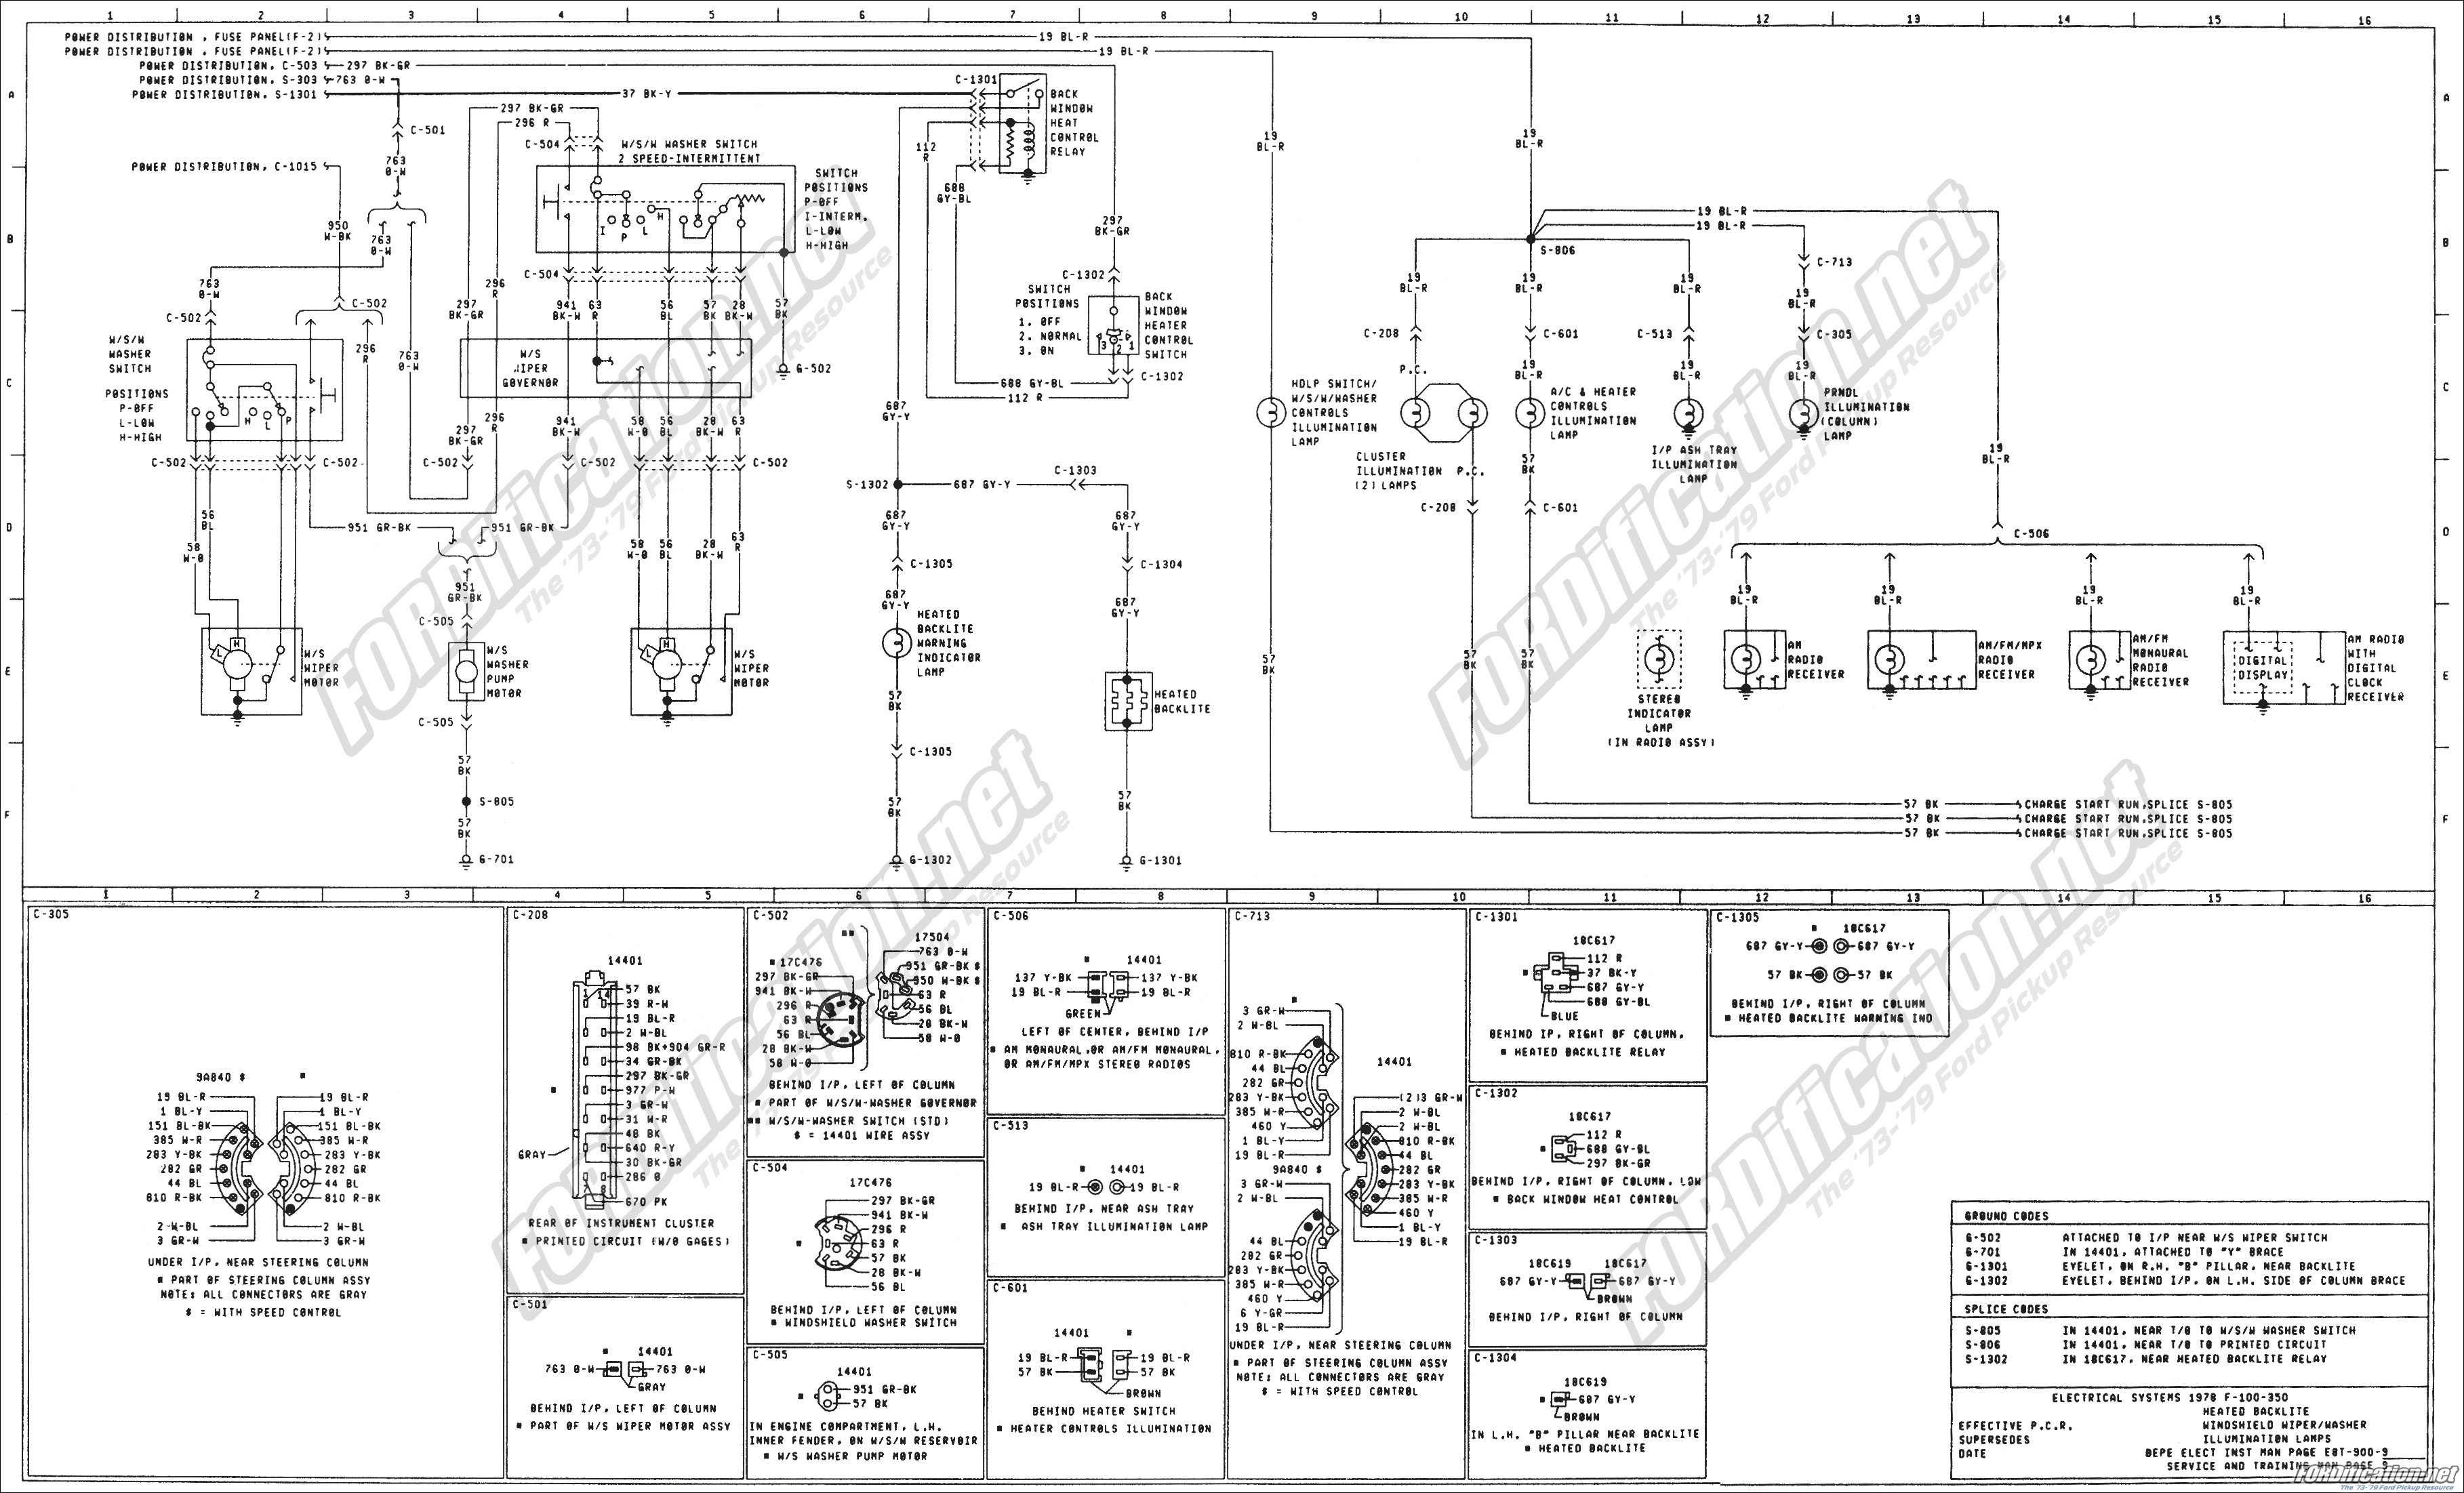 1979 sportster wiring diagram 1979 f350 wiring diagram 1973-1979 ford truck wiring diagrams & schematics ...